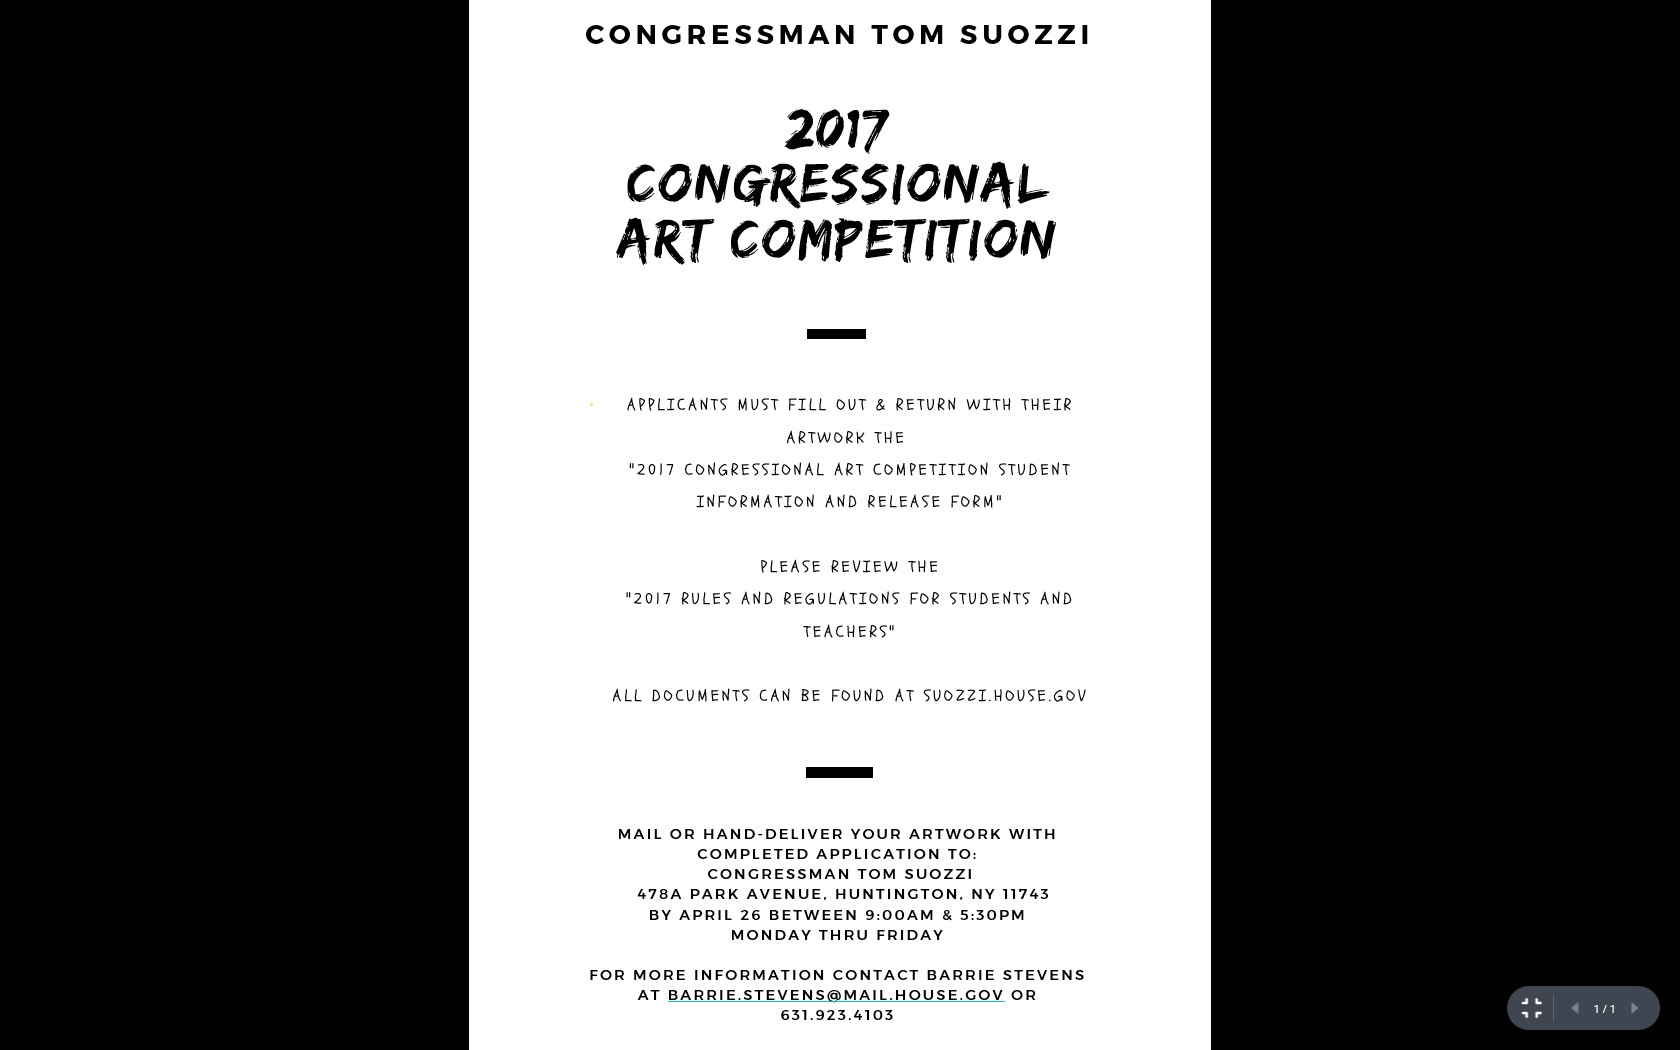 Congressional Art Competition 2017 - NY03 Announcement Flier